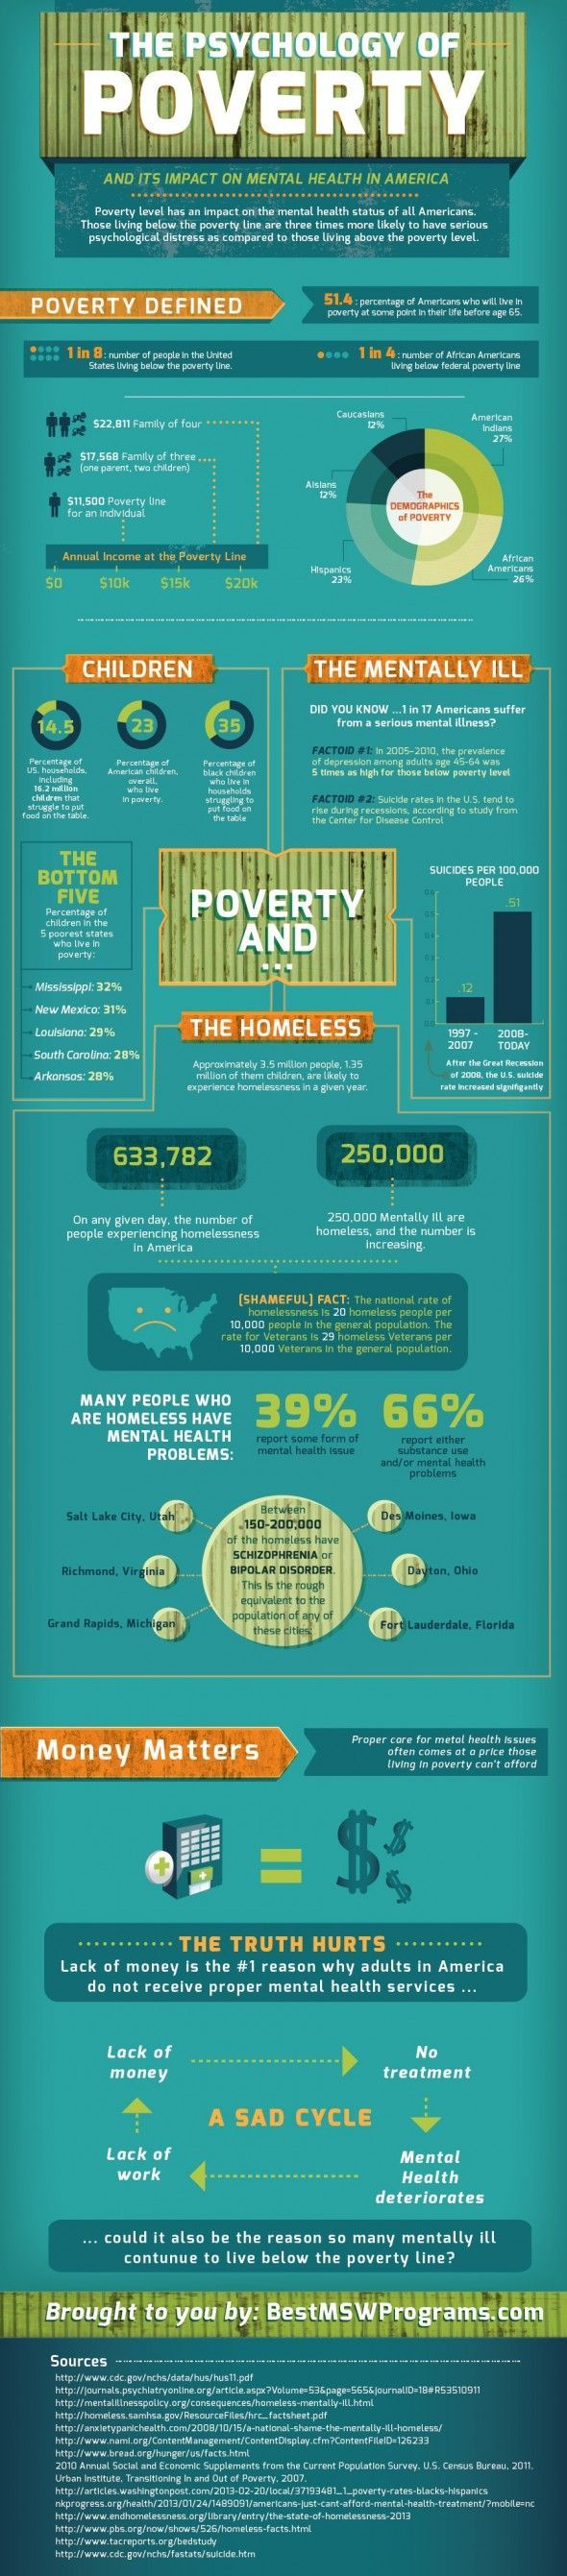 Psychology-Infographic-Infographic-Poverty-in-America Psychology Infographic : Infographic: Poverty in America